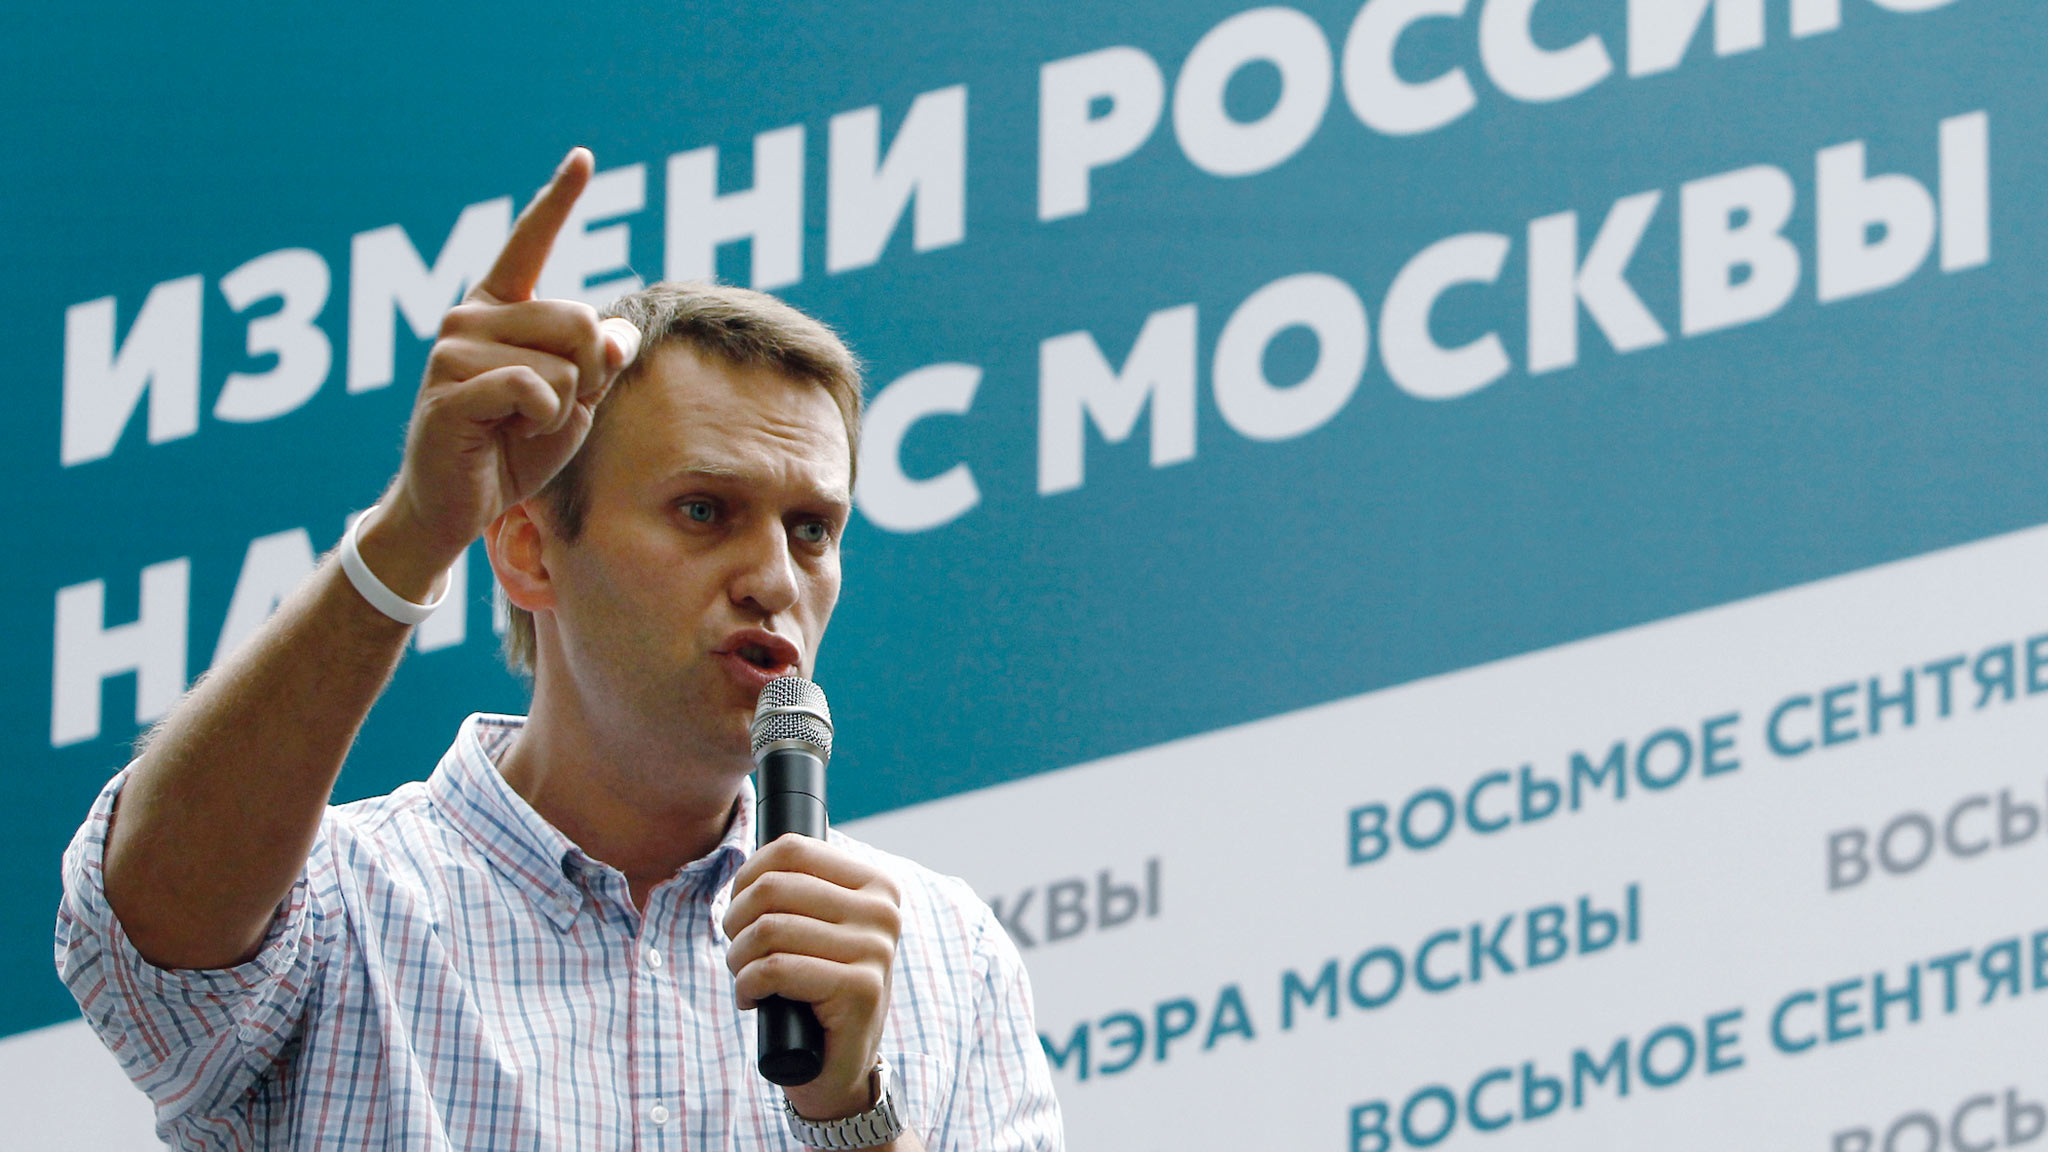 Russian Prosecutors Probe Alexei Navalny Campaign Contributions Financial Times